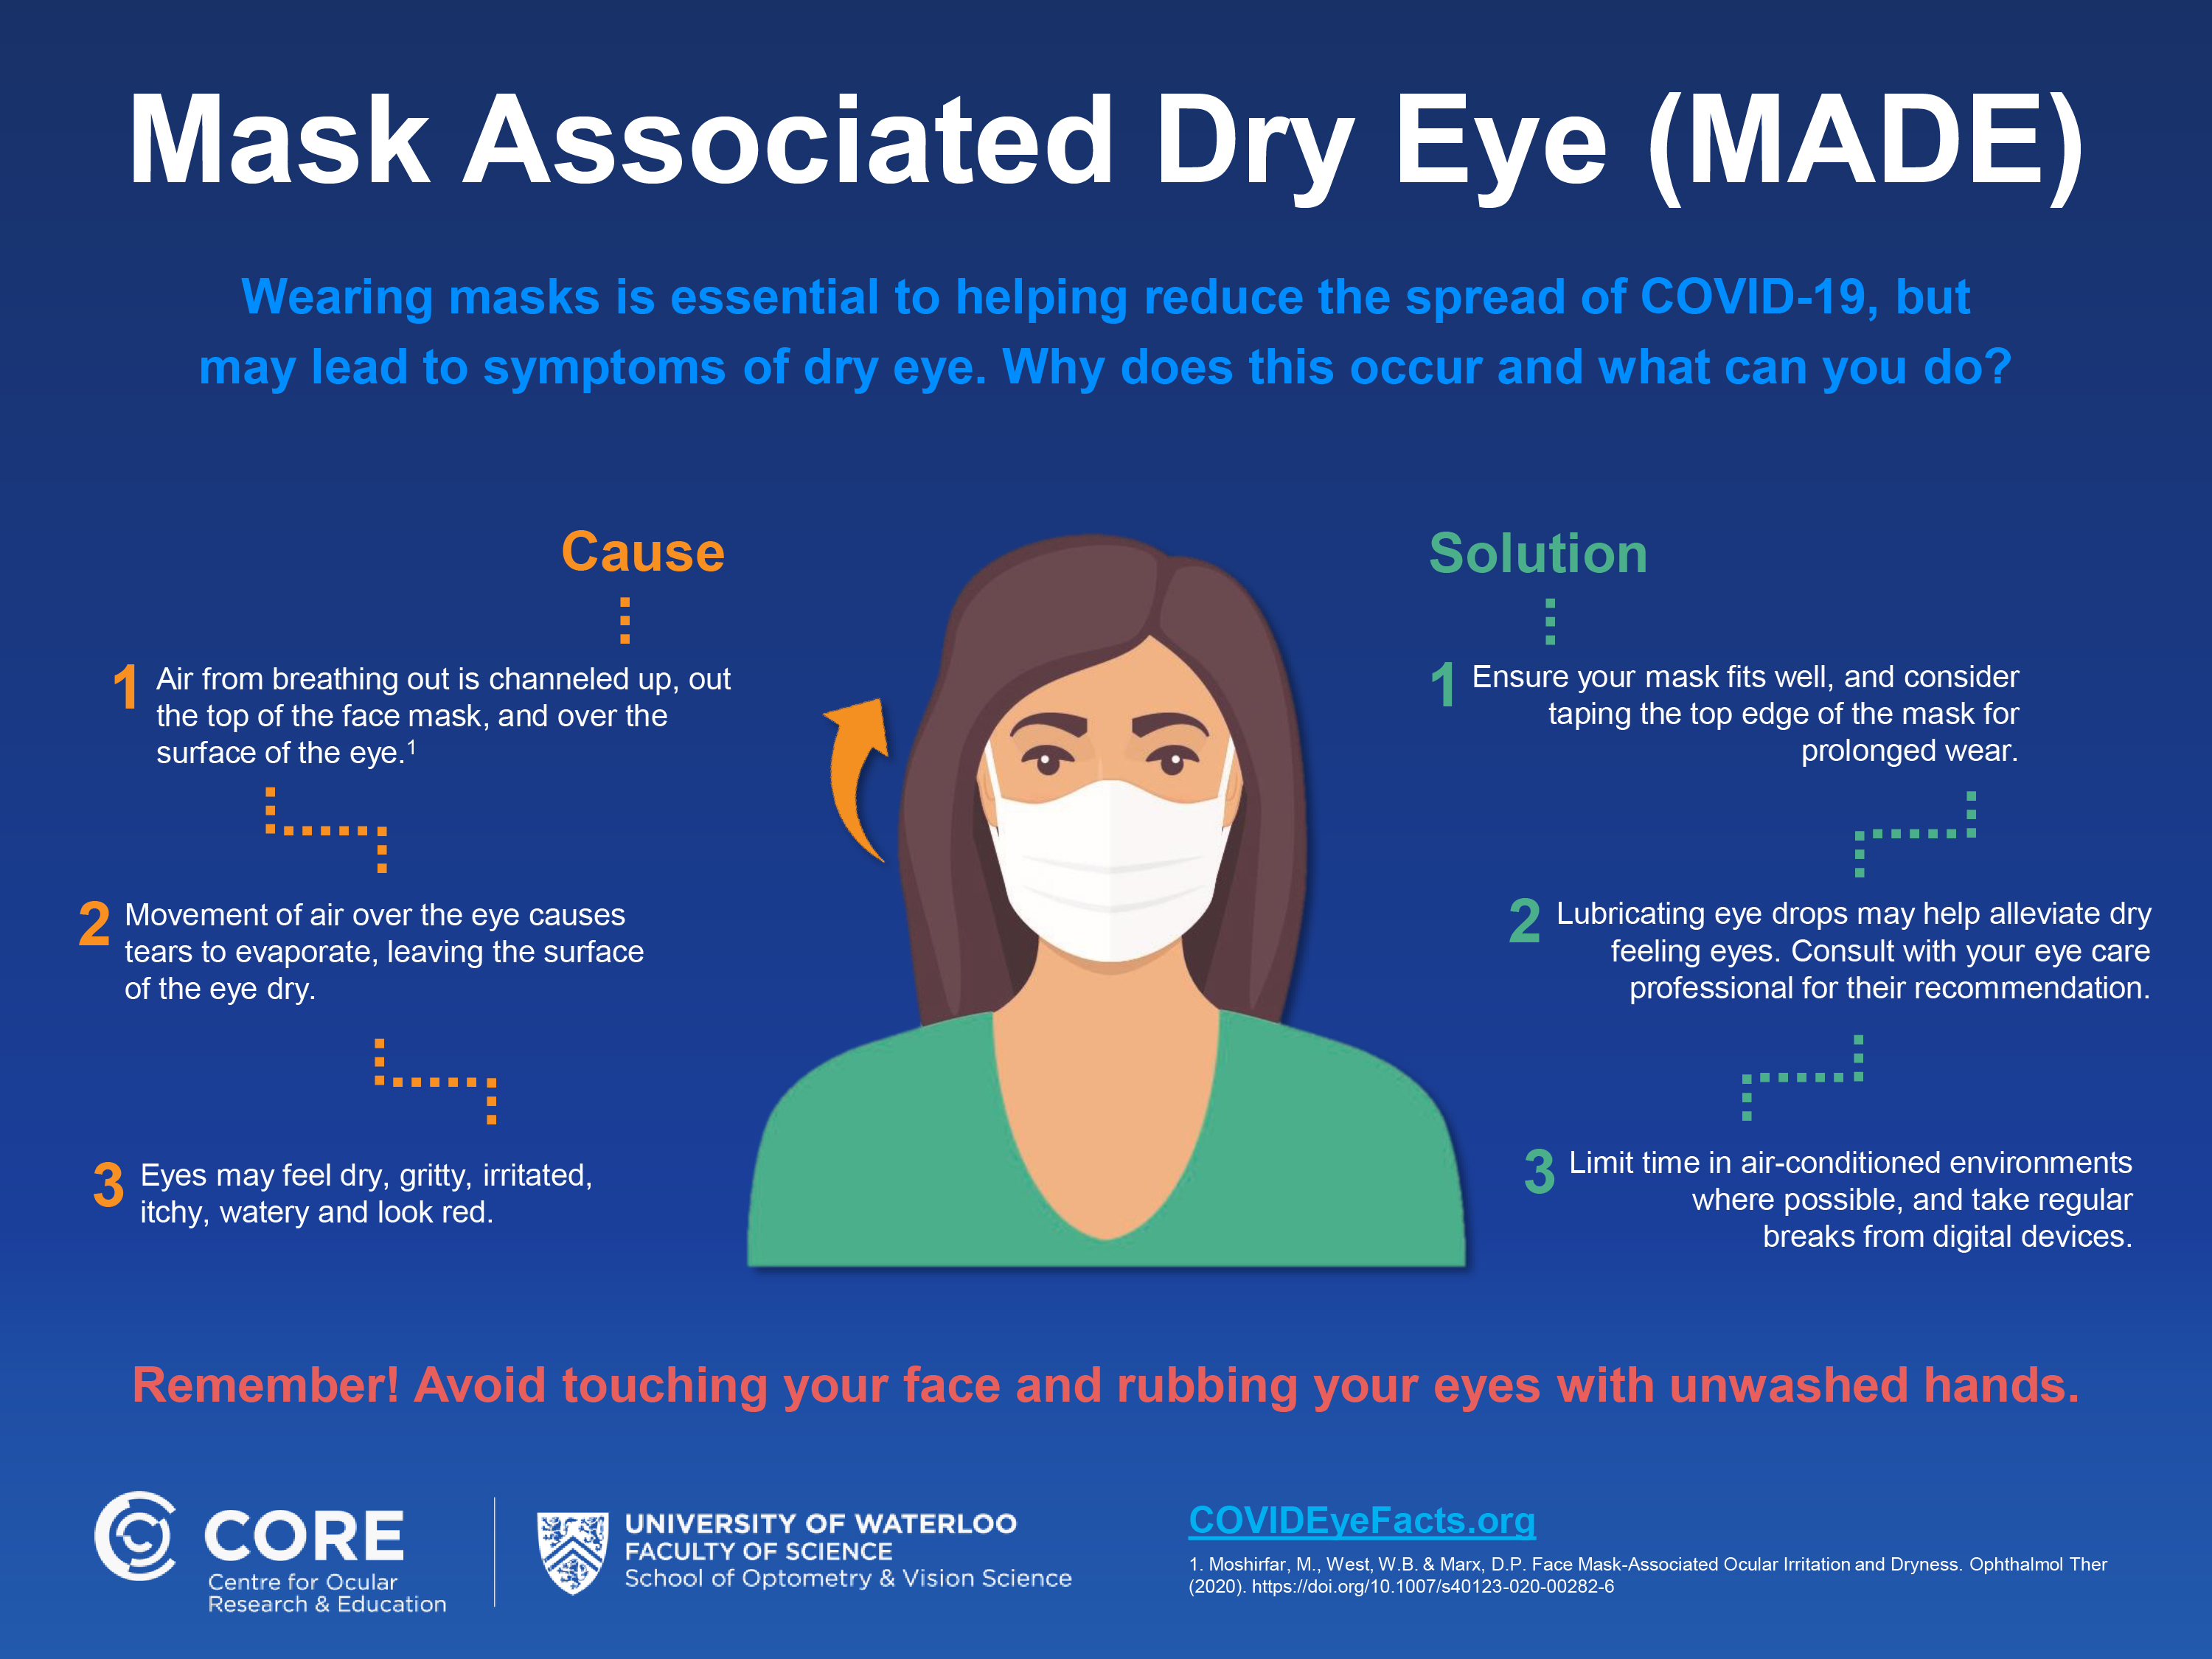 Mask Associated Dry Eye Infographic